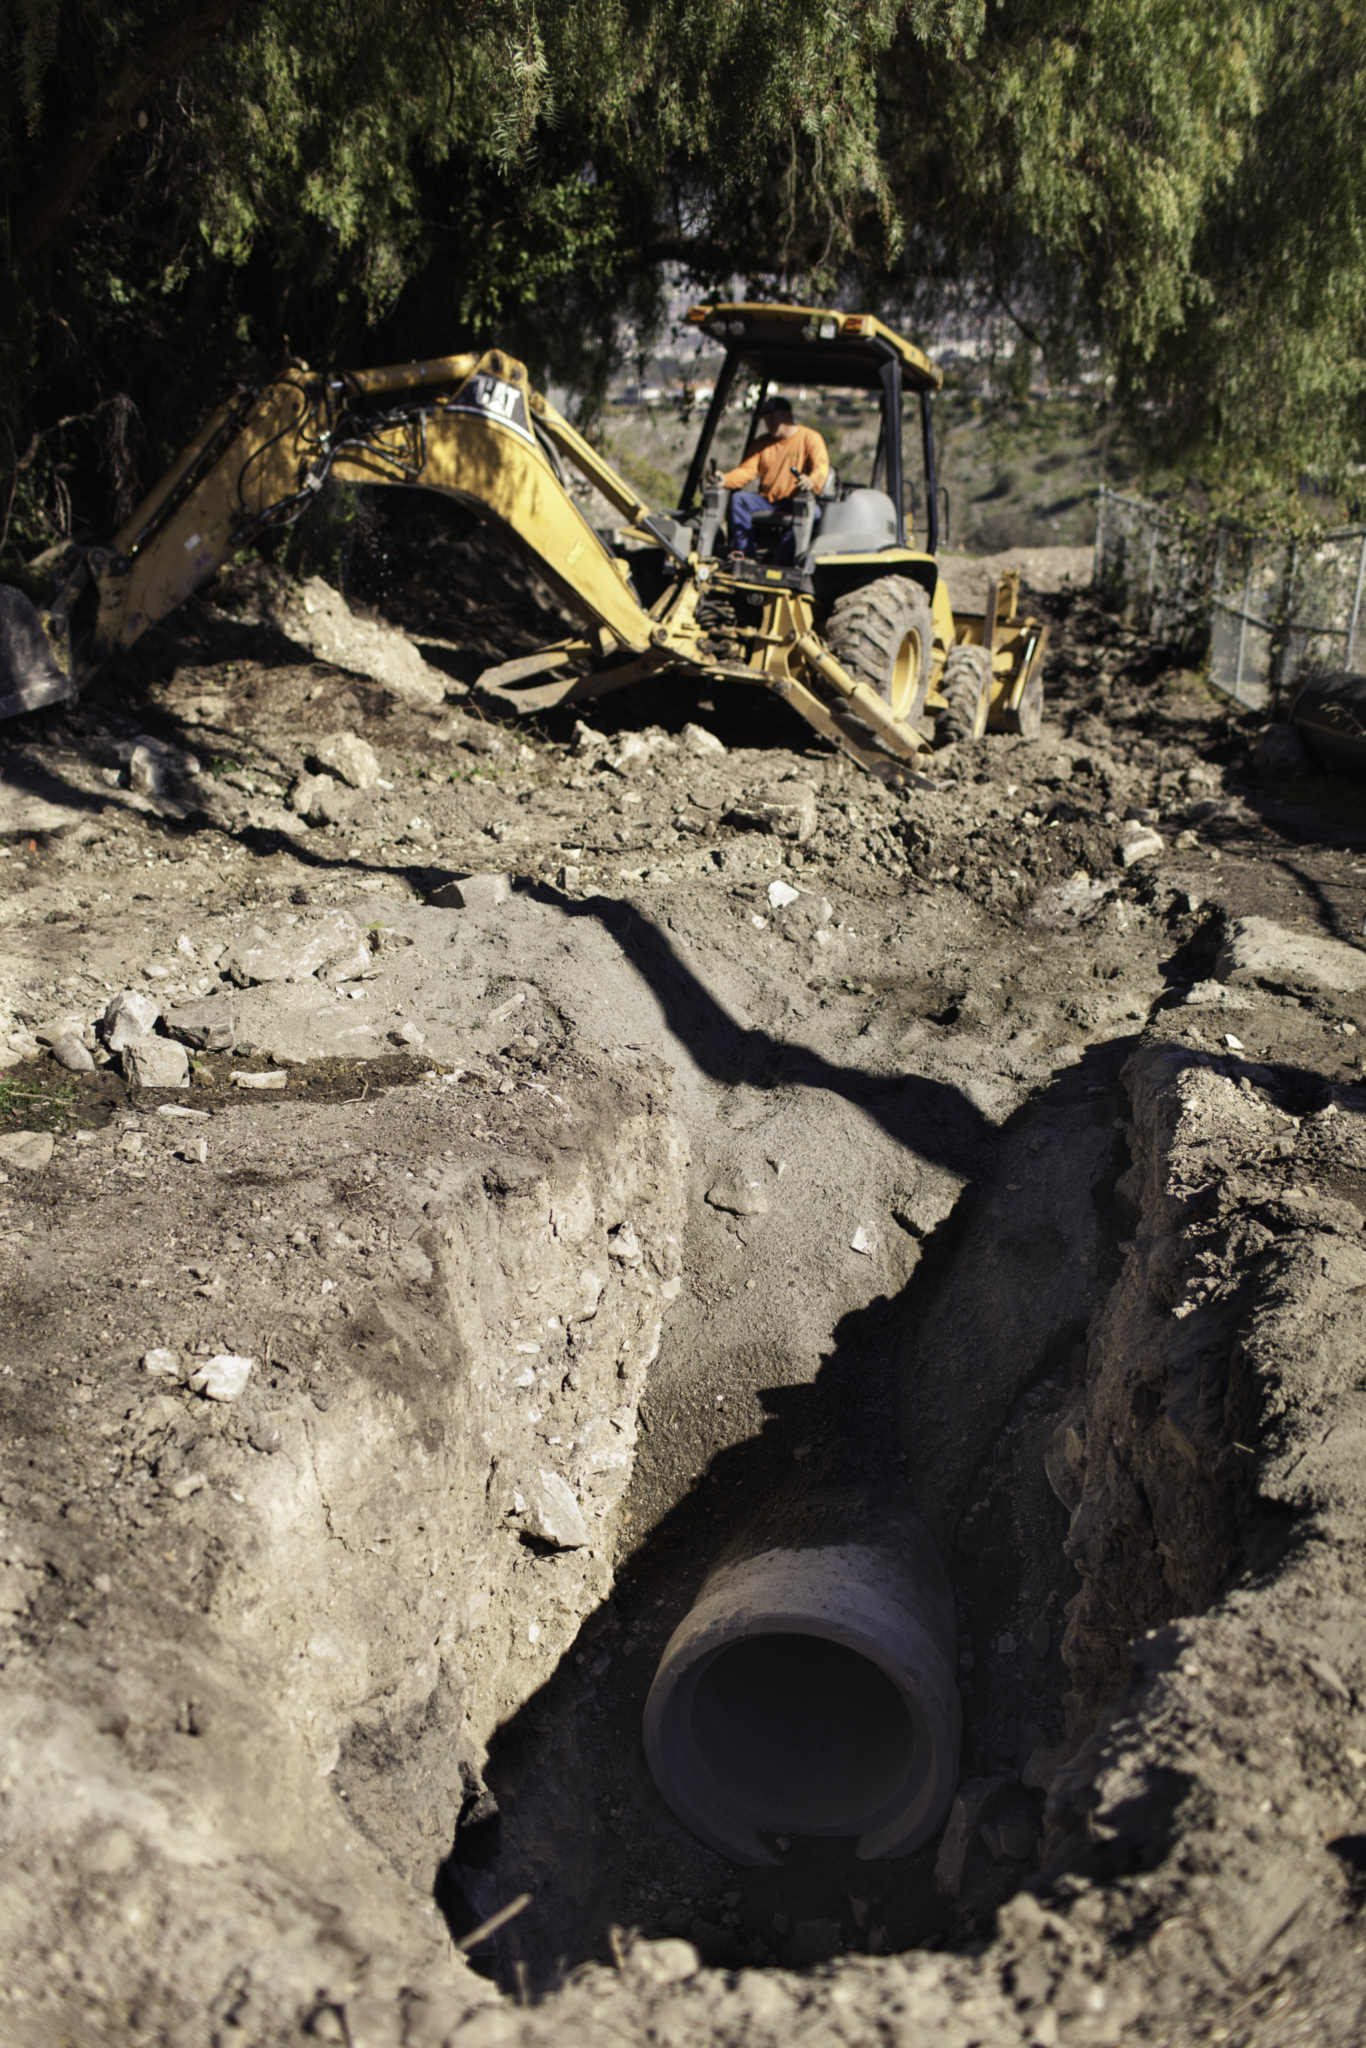 The city manages contracts with outside firms to handle construction needs, including this pipe replacement project initiated by a weathered steel pipe that led to a sinkhole.